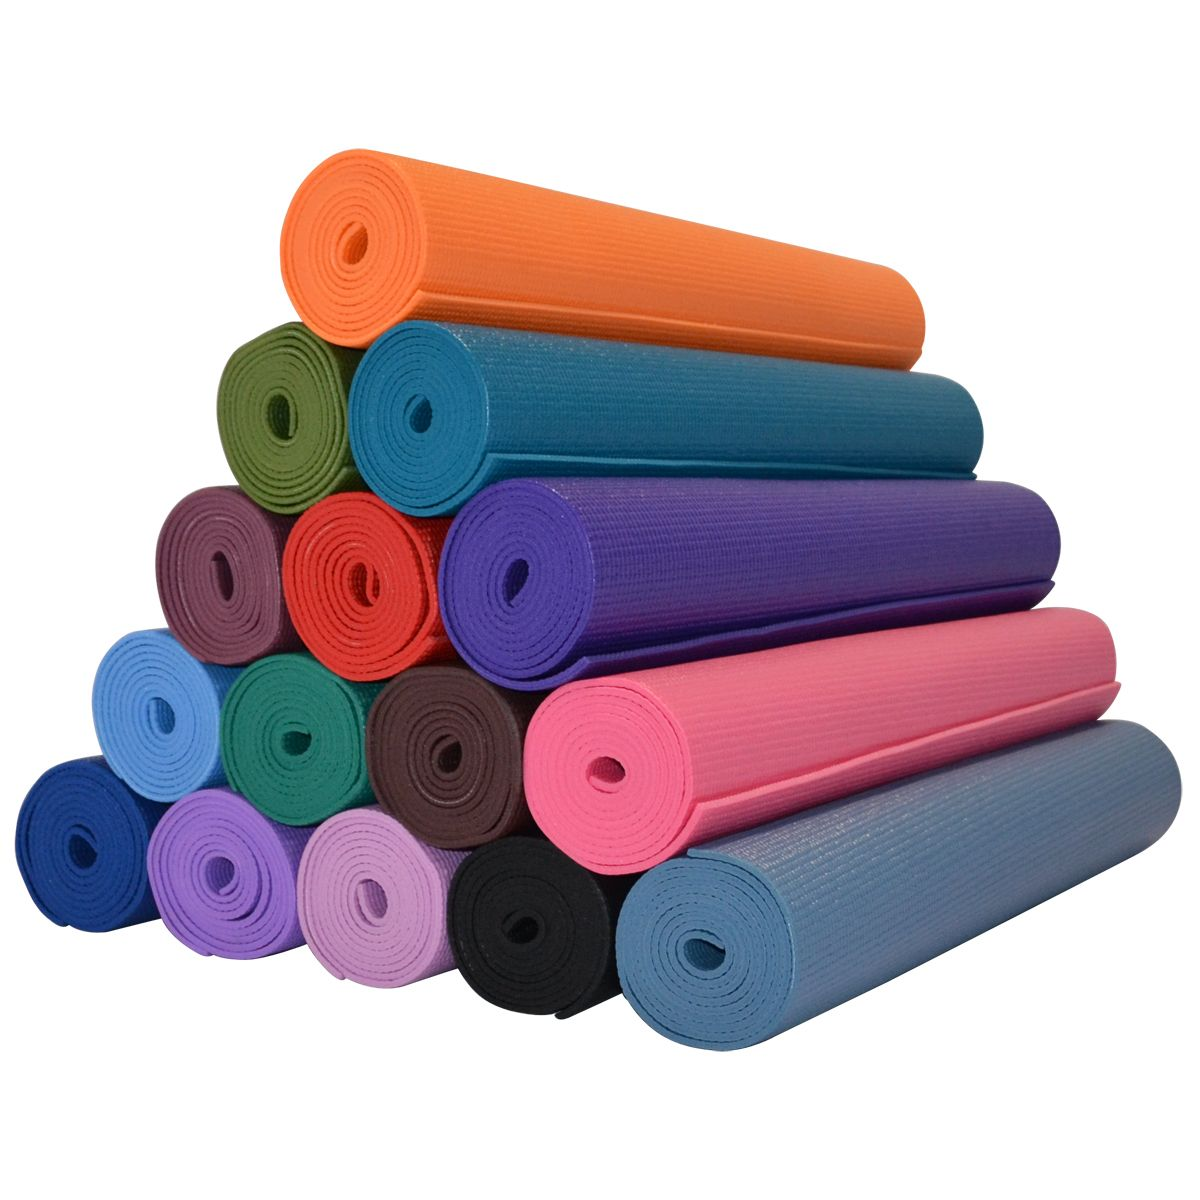 Yoga Accessories 1 8 Classic Yoga Mat Yoga Mats Best Thick Yoga Mats Yoga Mats Design